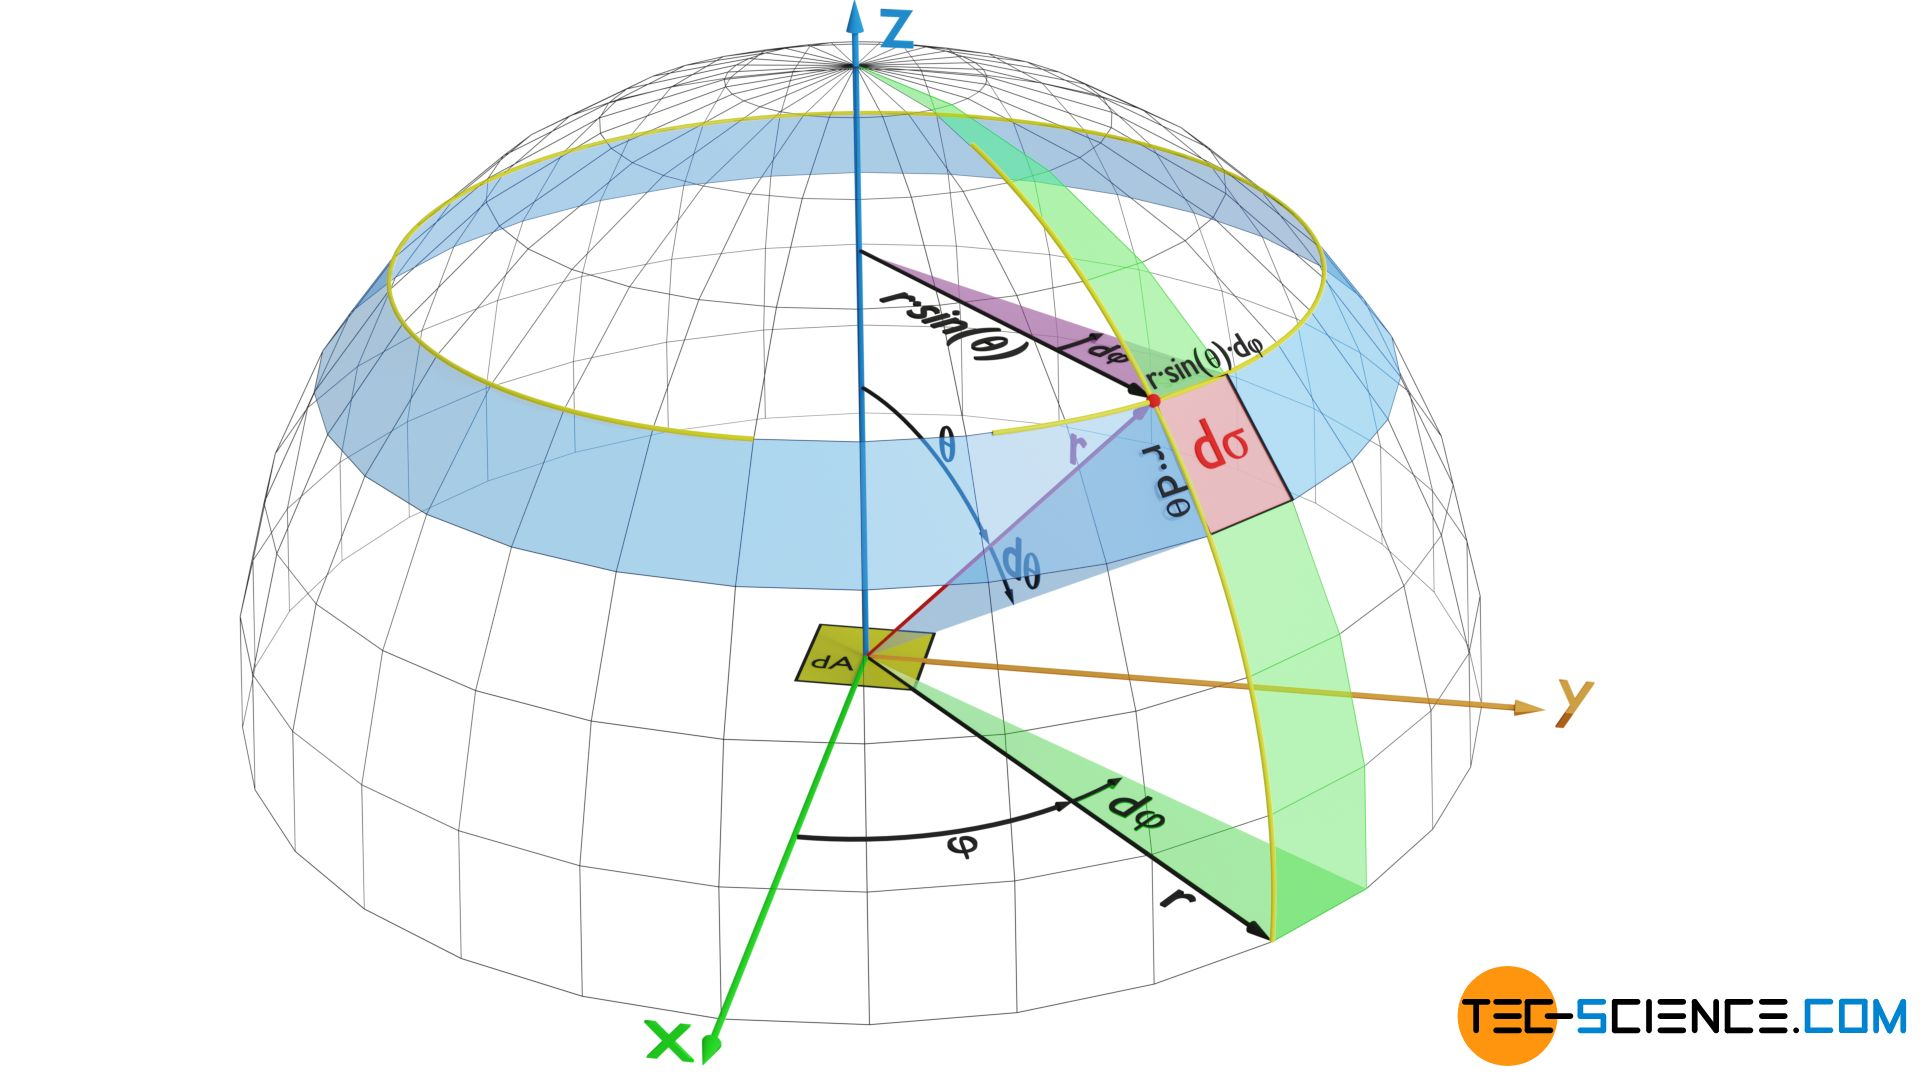 Describing a solid angle with spherical coordinates